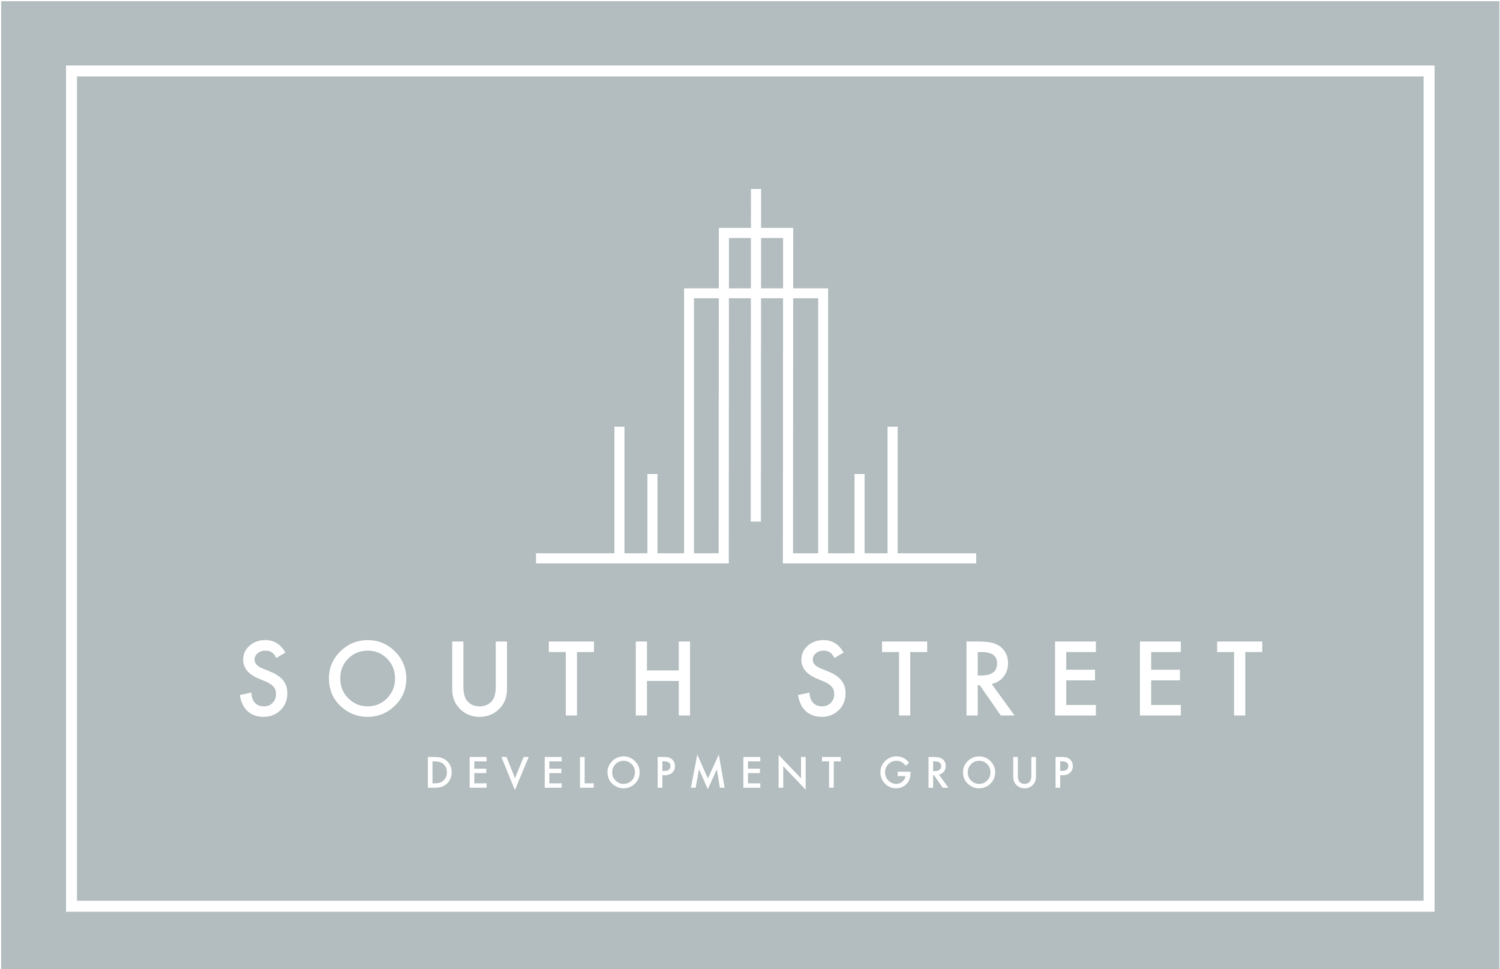 South Street Development Group